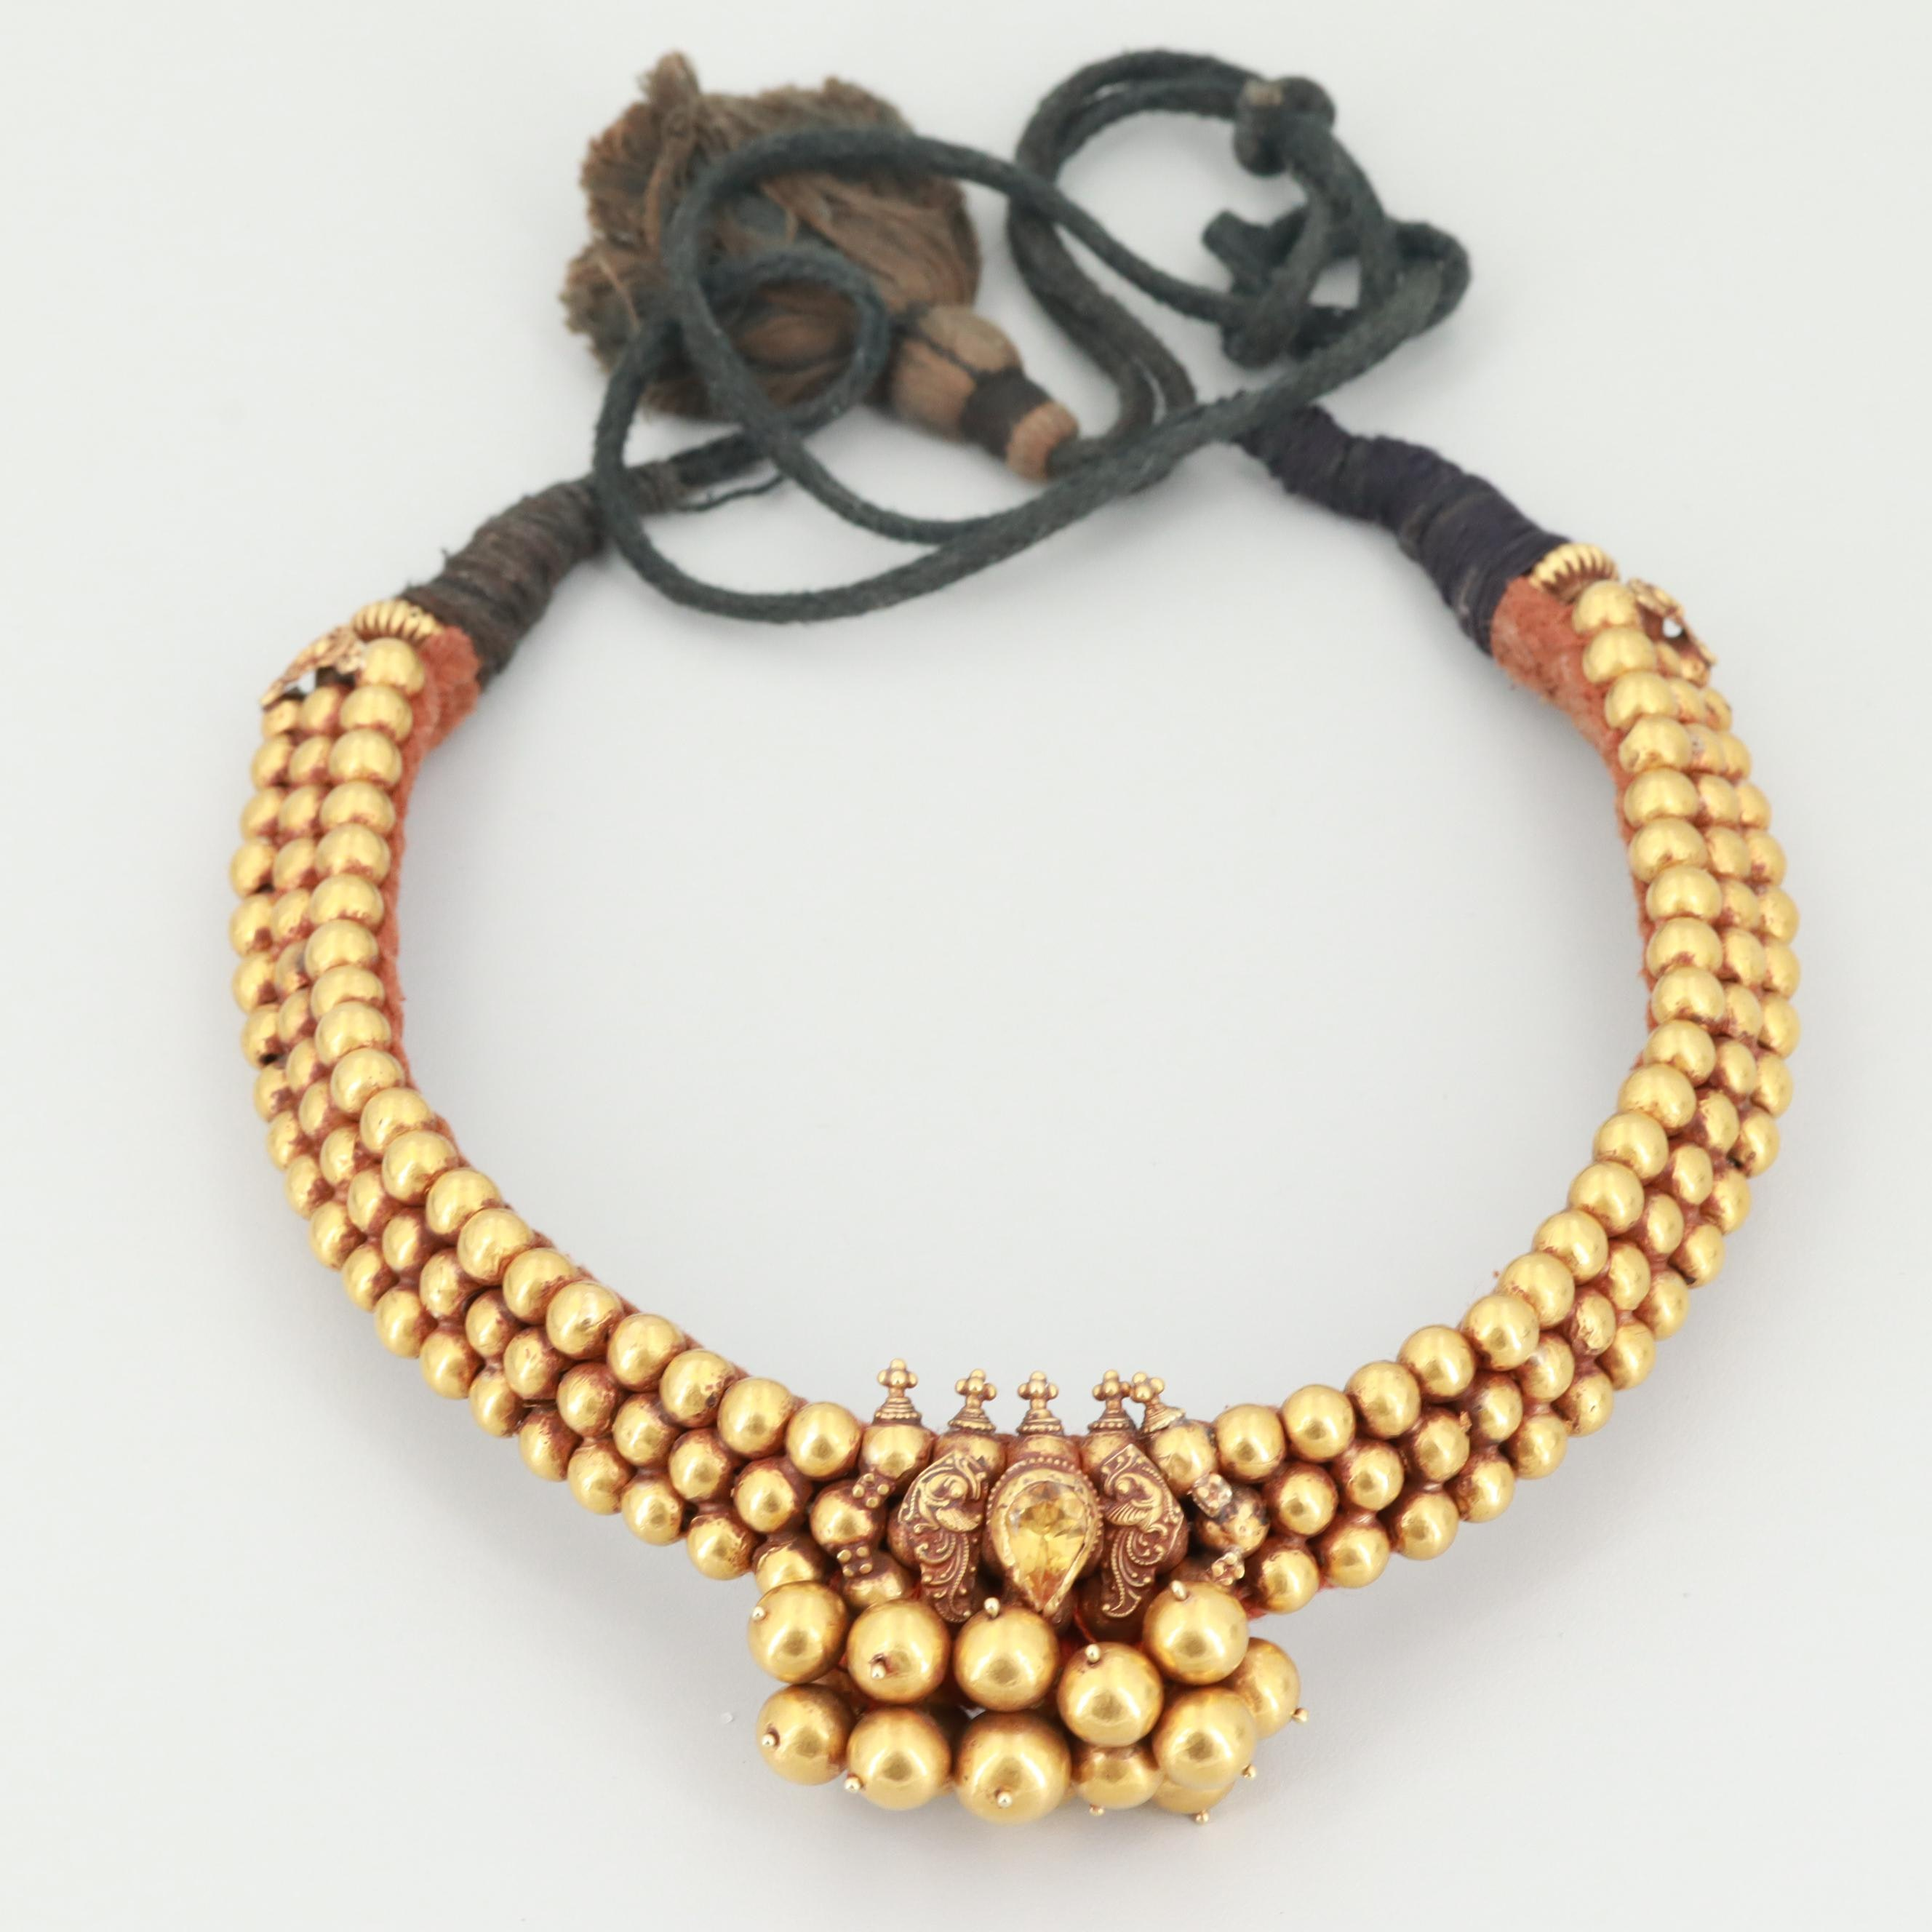 Indian Style Gold Tone Beaded Bib Necklace with Citrine Accent